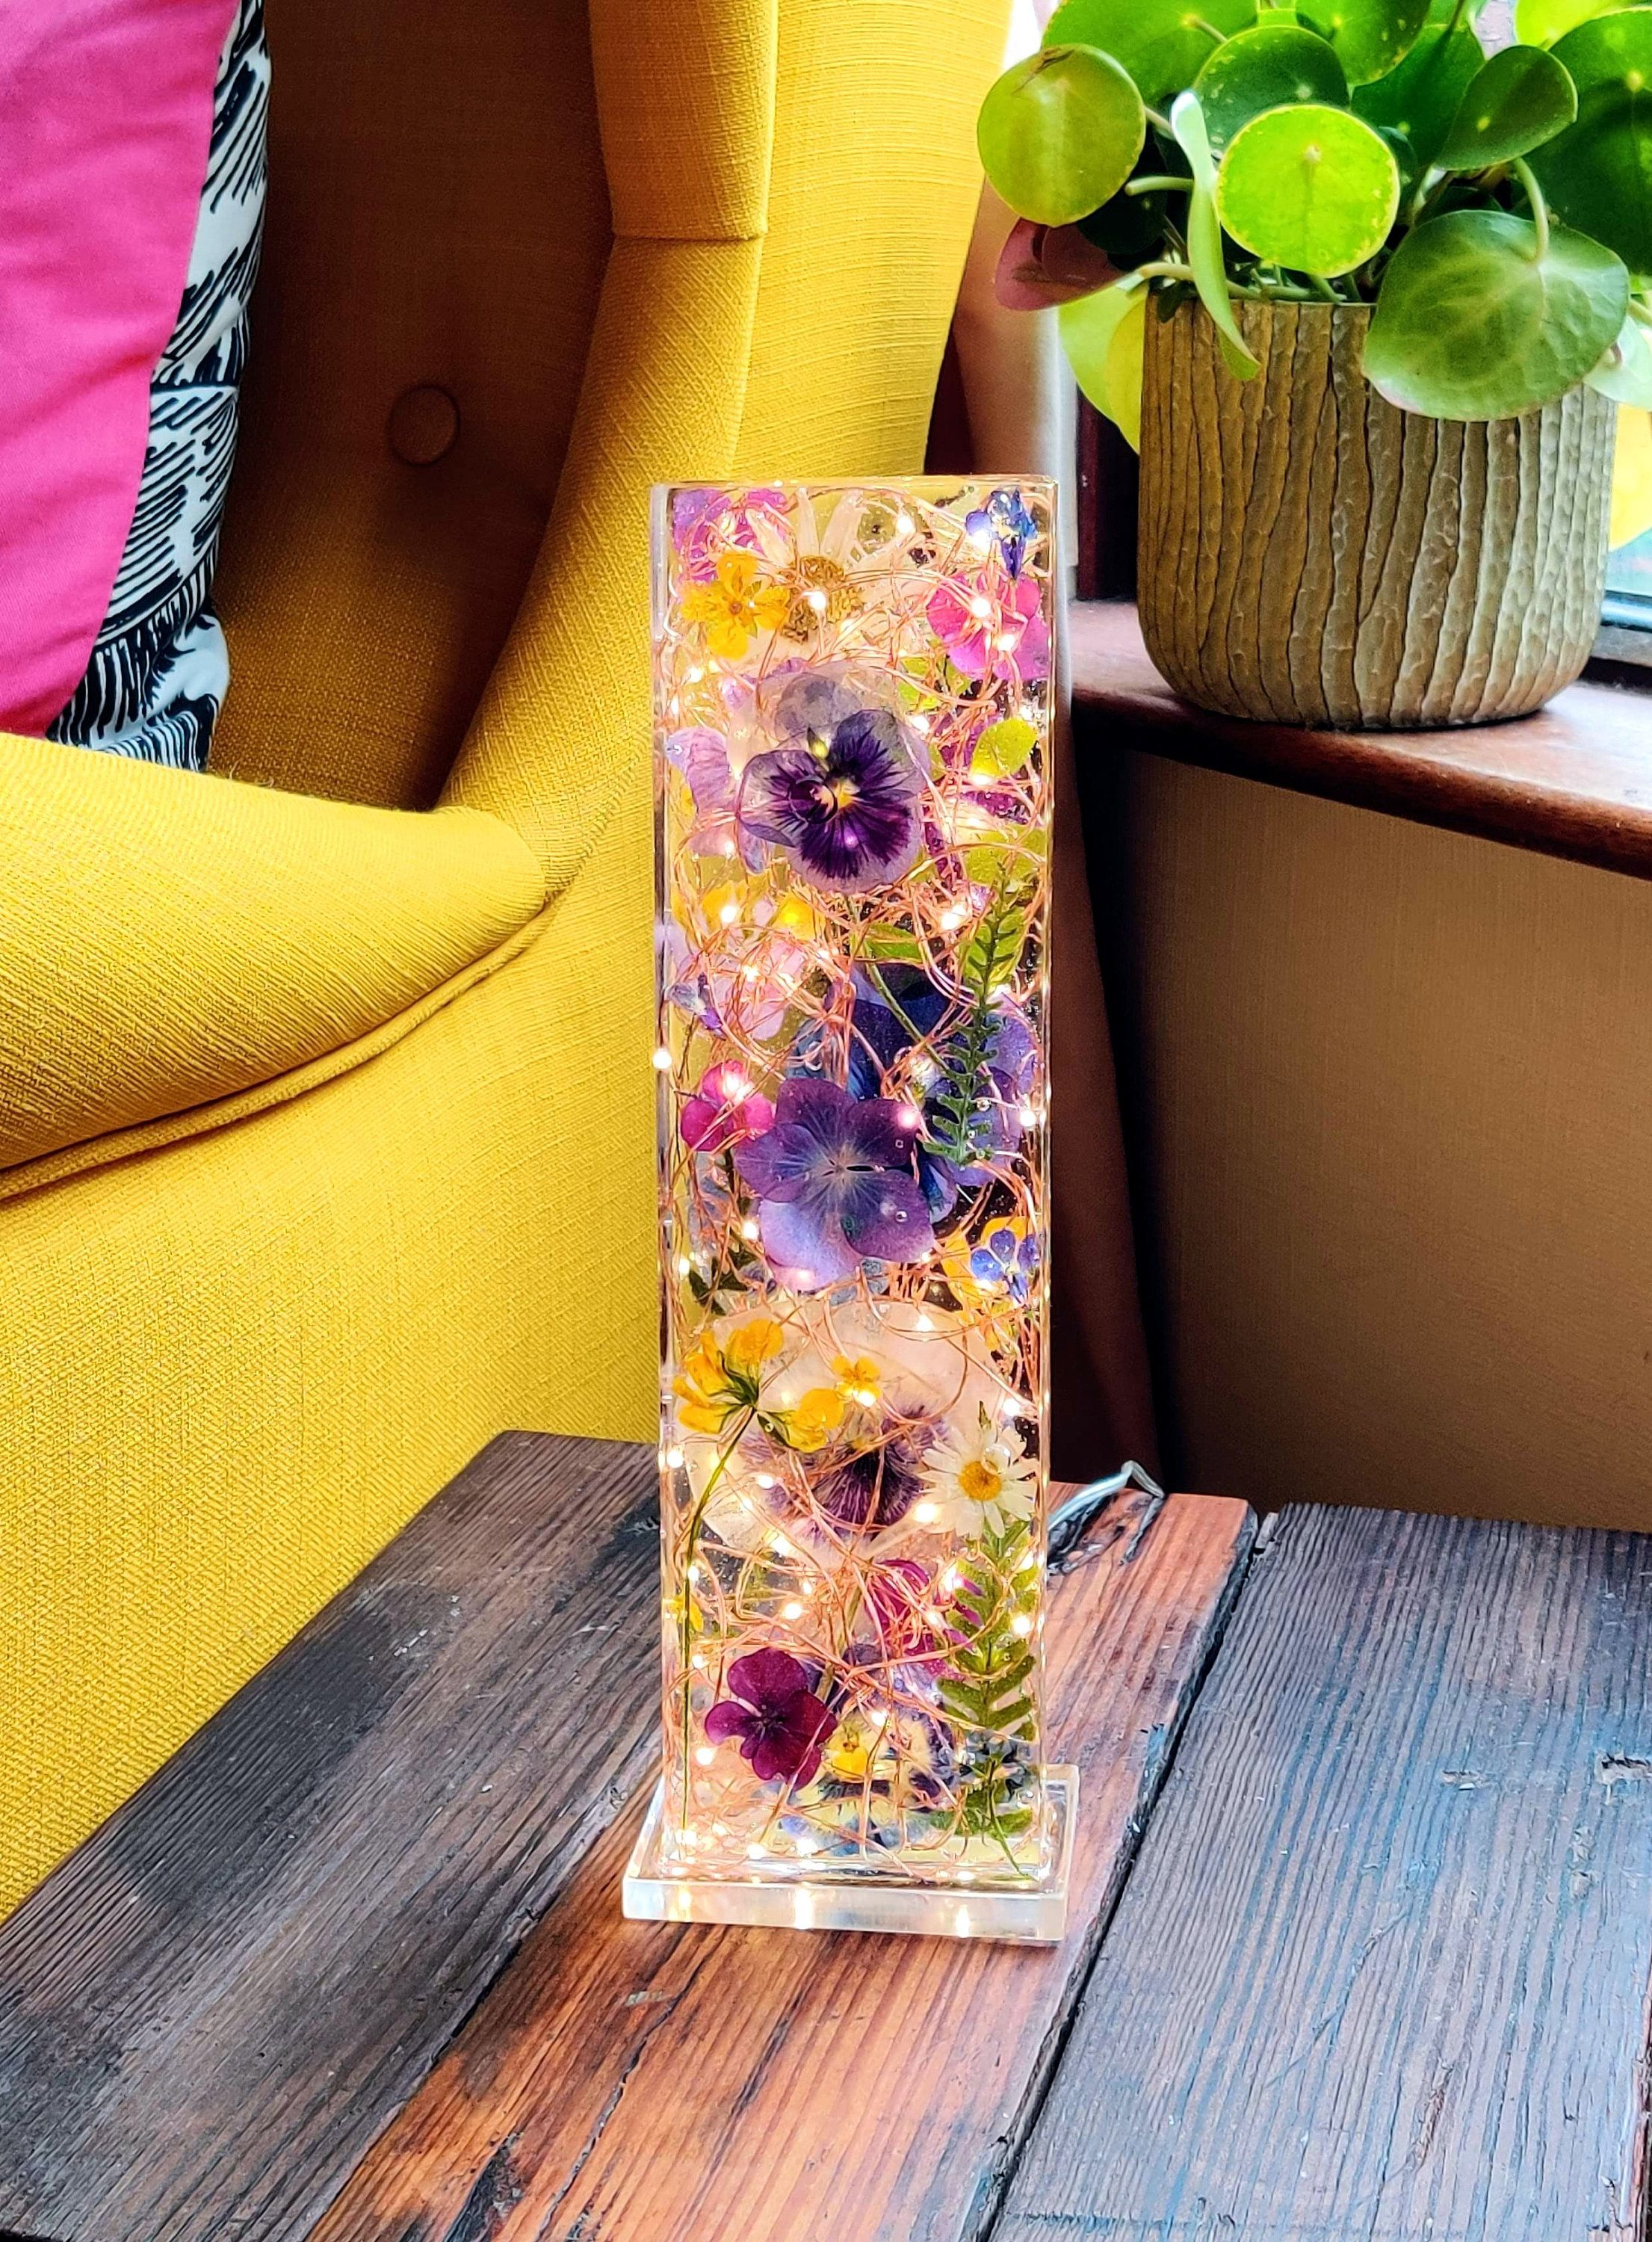 Flowers And Resin Light Sculpture One Of A Kind Etsy Flower Resin Jewelry Resin Diy Diy Resin Crafts